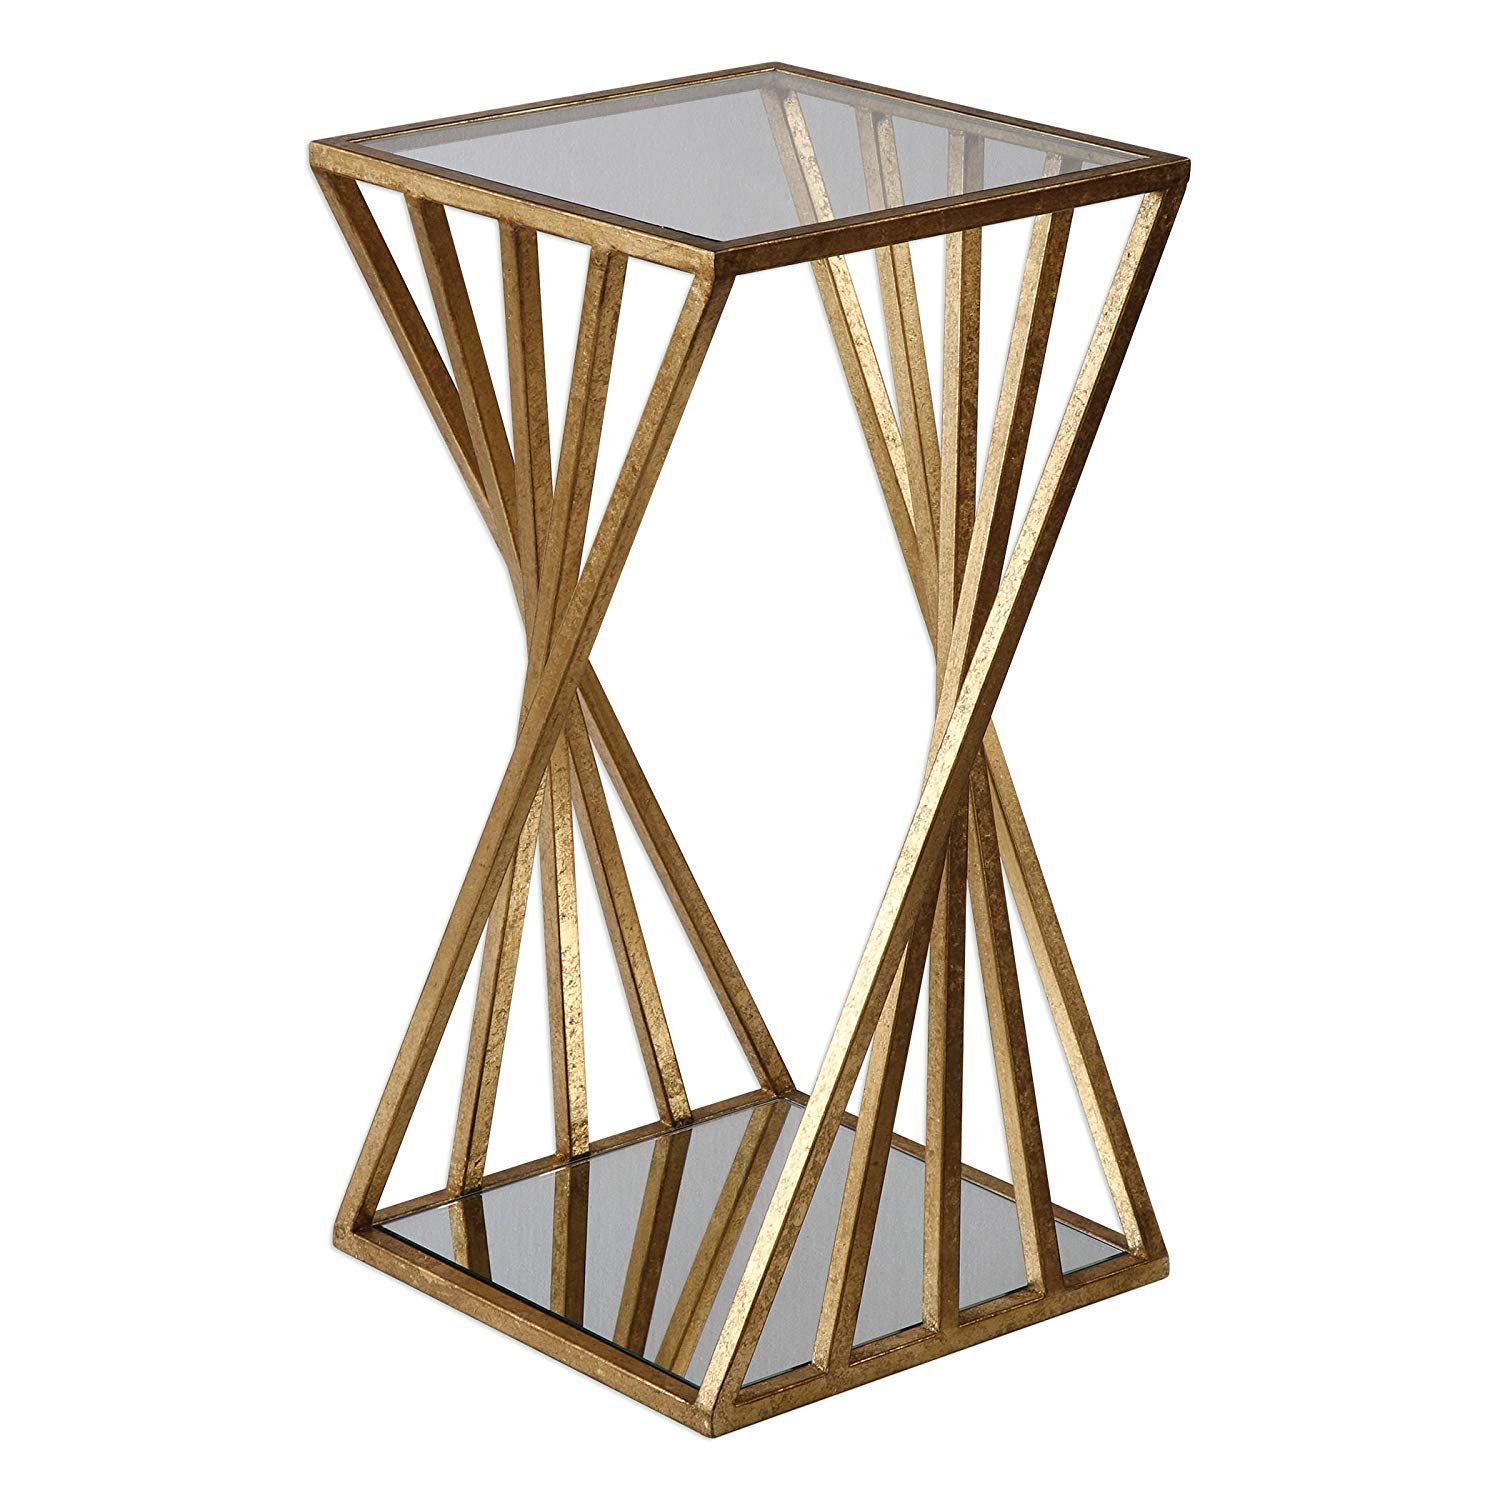 gold angle geometric square accent table open pedestal with glass top column modern kitchen dining furniture showrooms bangalore sectional sofas edmonton espresso replica chairs